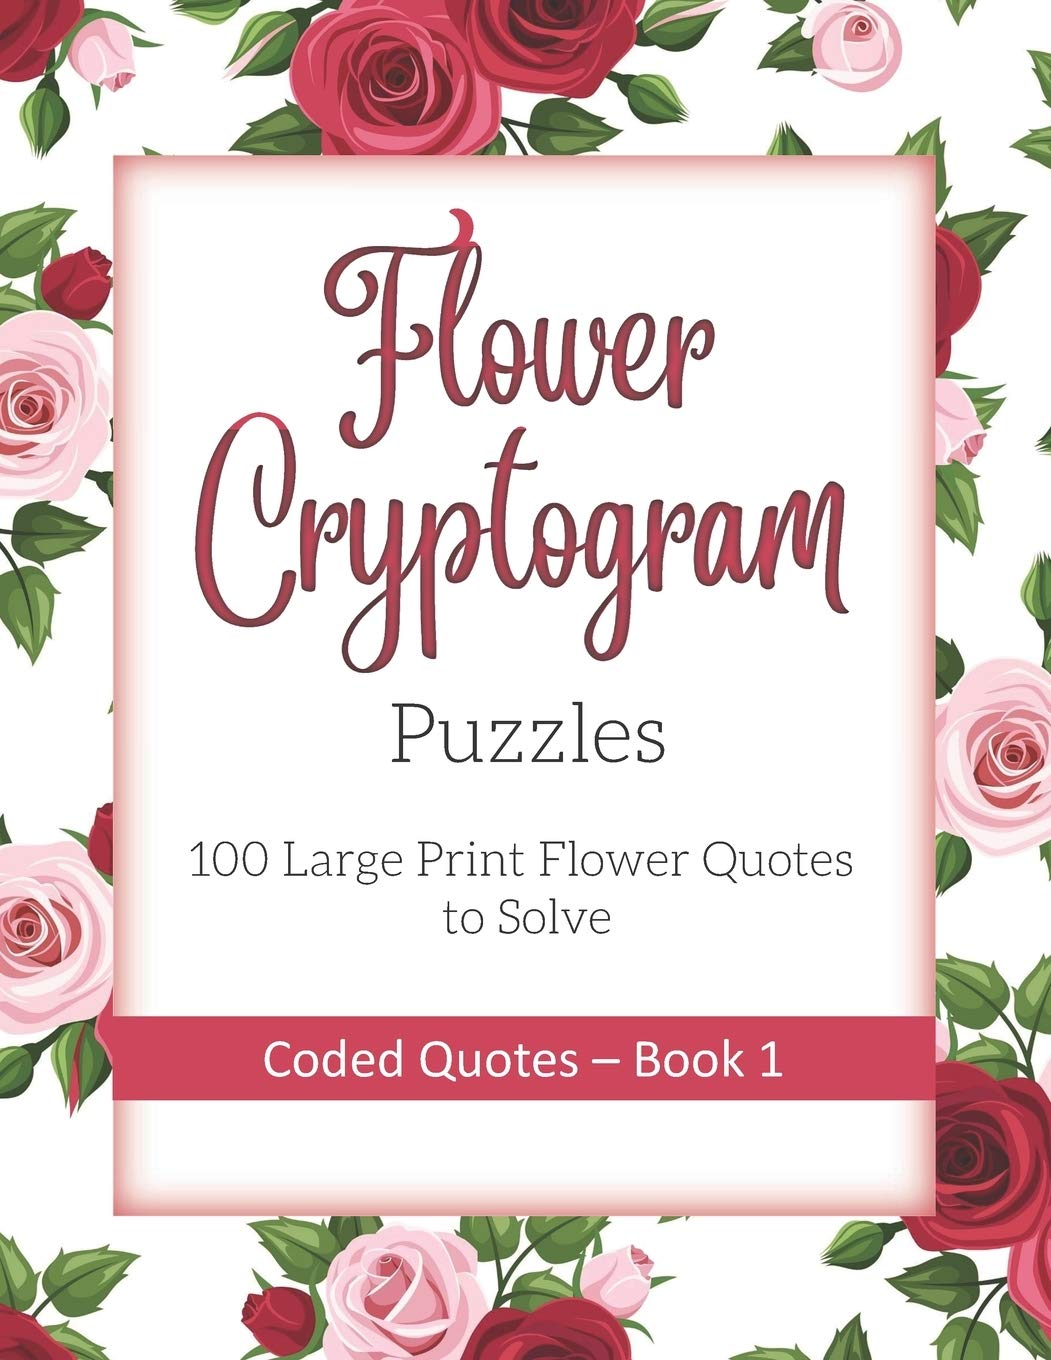 buy flower cryptogram puzzles large print flower quotes to